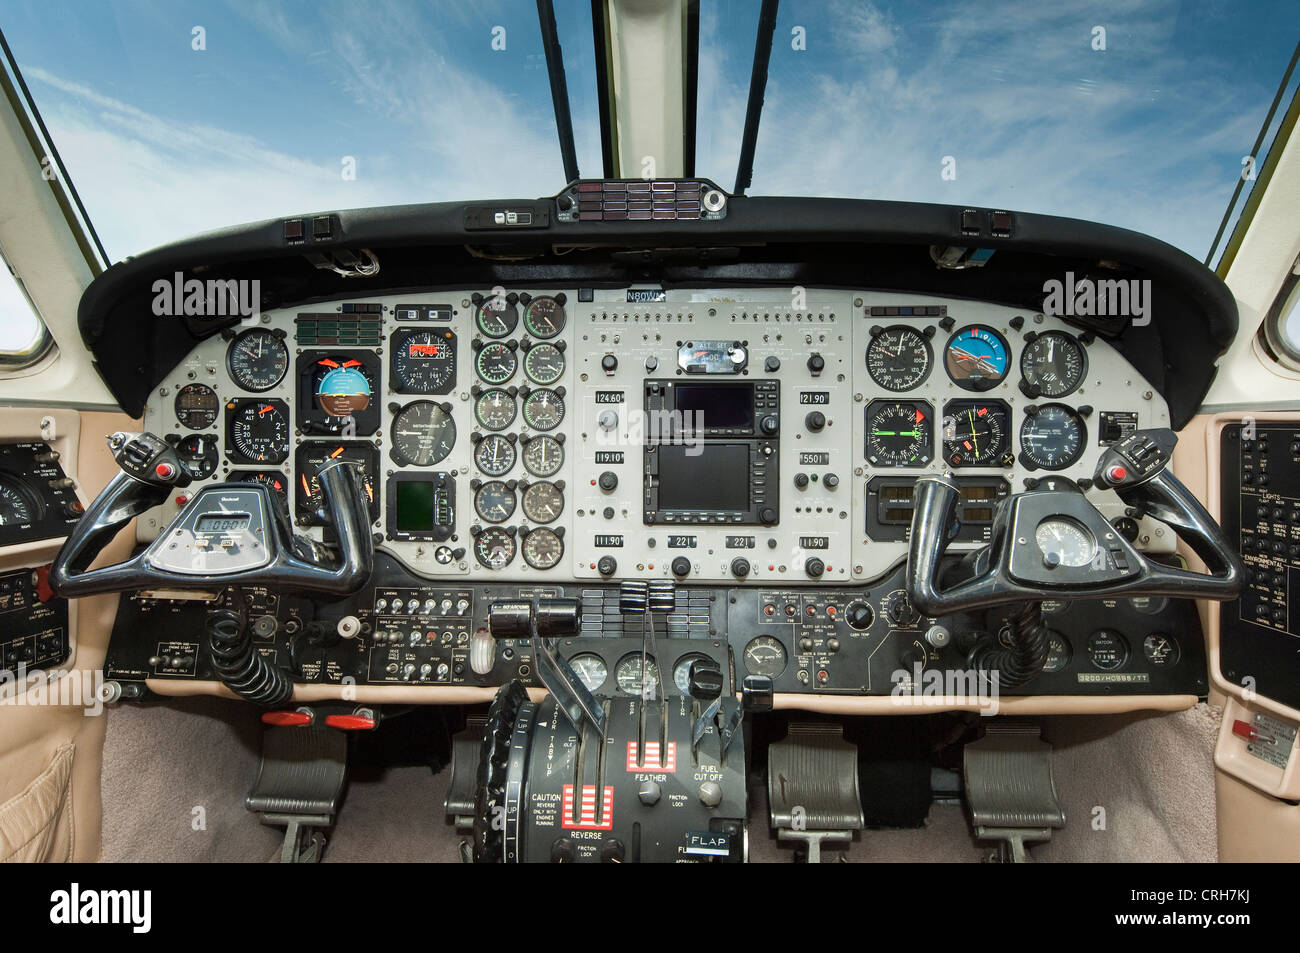 King Air airplane cockpit - Stock Image